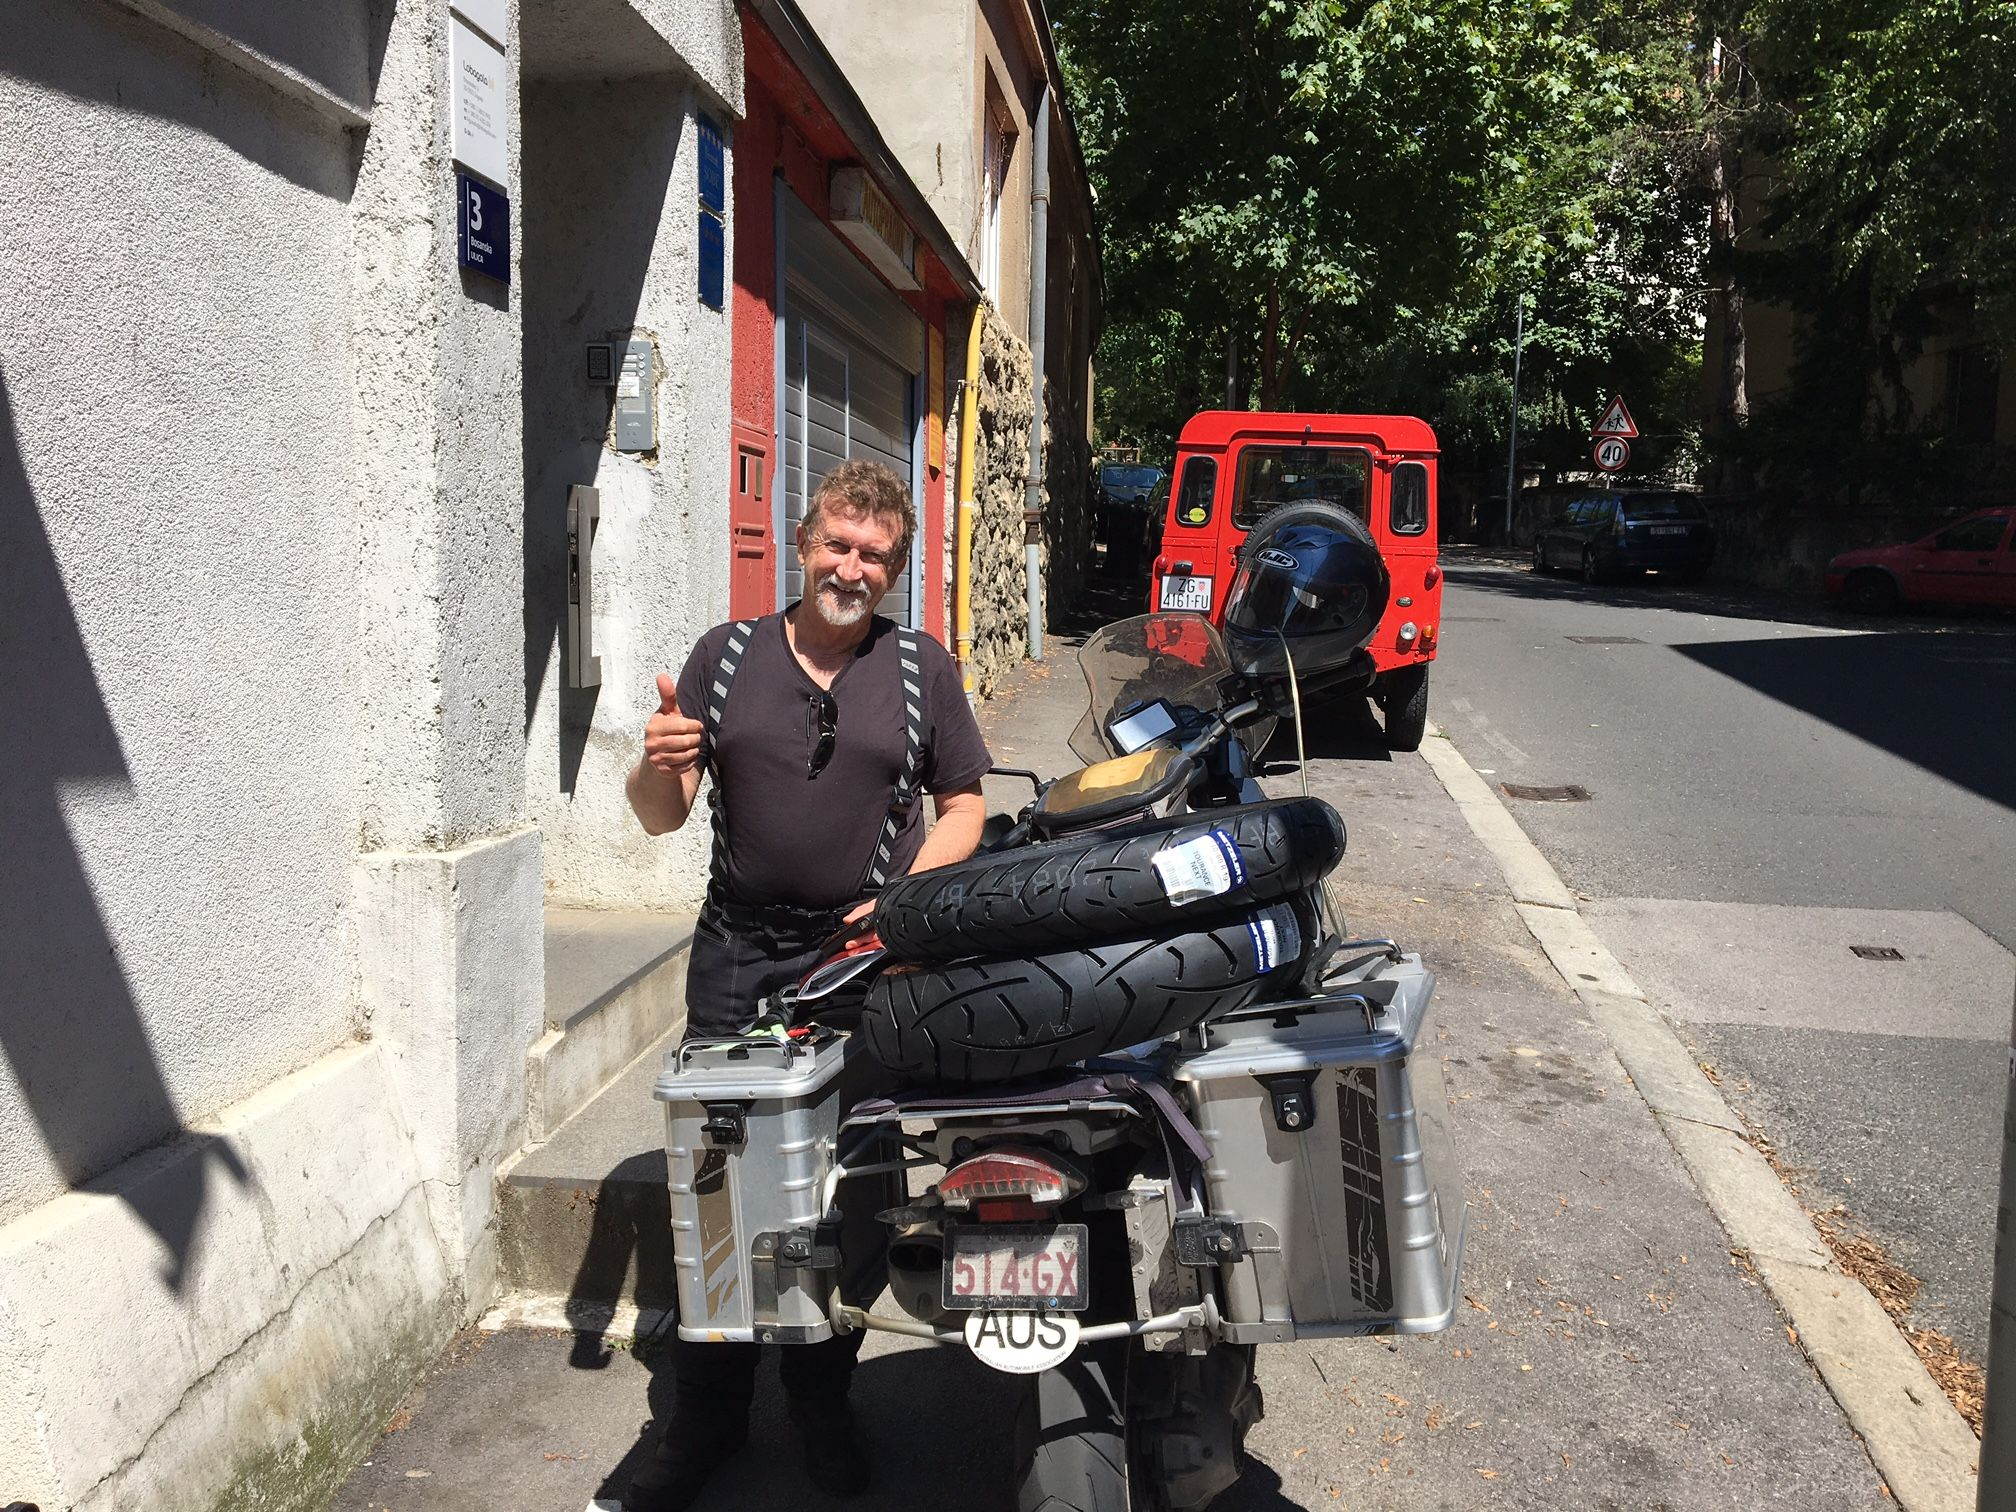 On A Bike No One Ever Asks Are We There Yet Lobagolabnb Zagreb Center Croatia Advrider Bike Rider Motorcycle Bike Cycli Bike Overlanding Bicycle